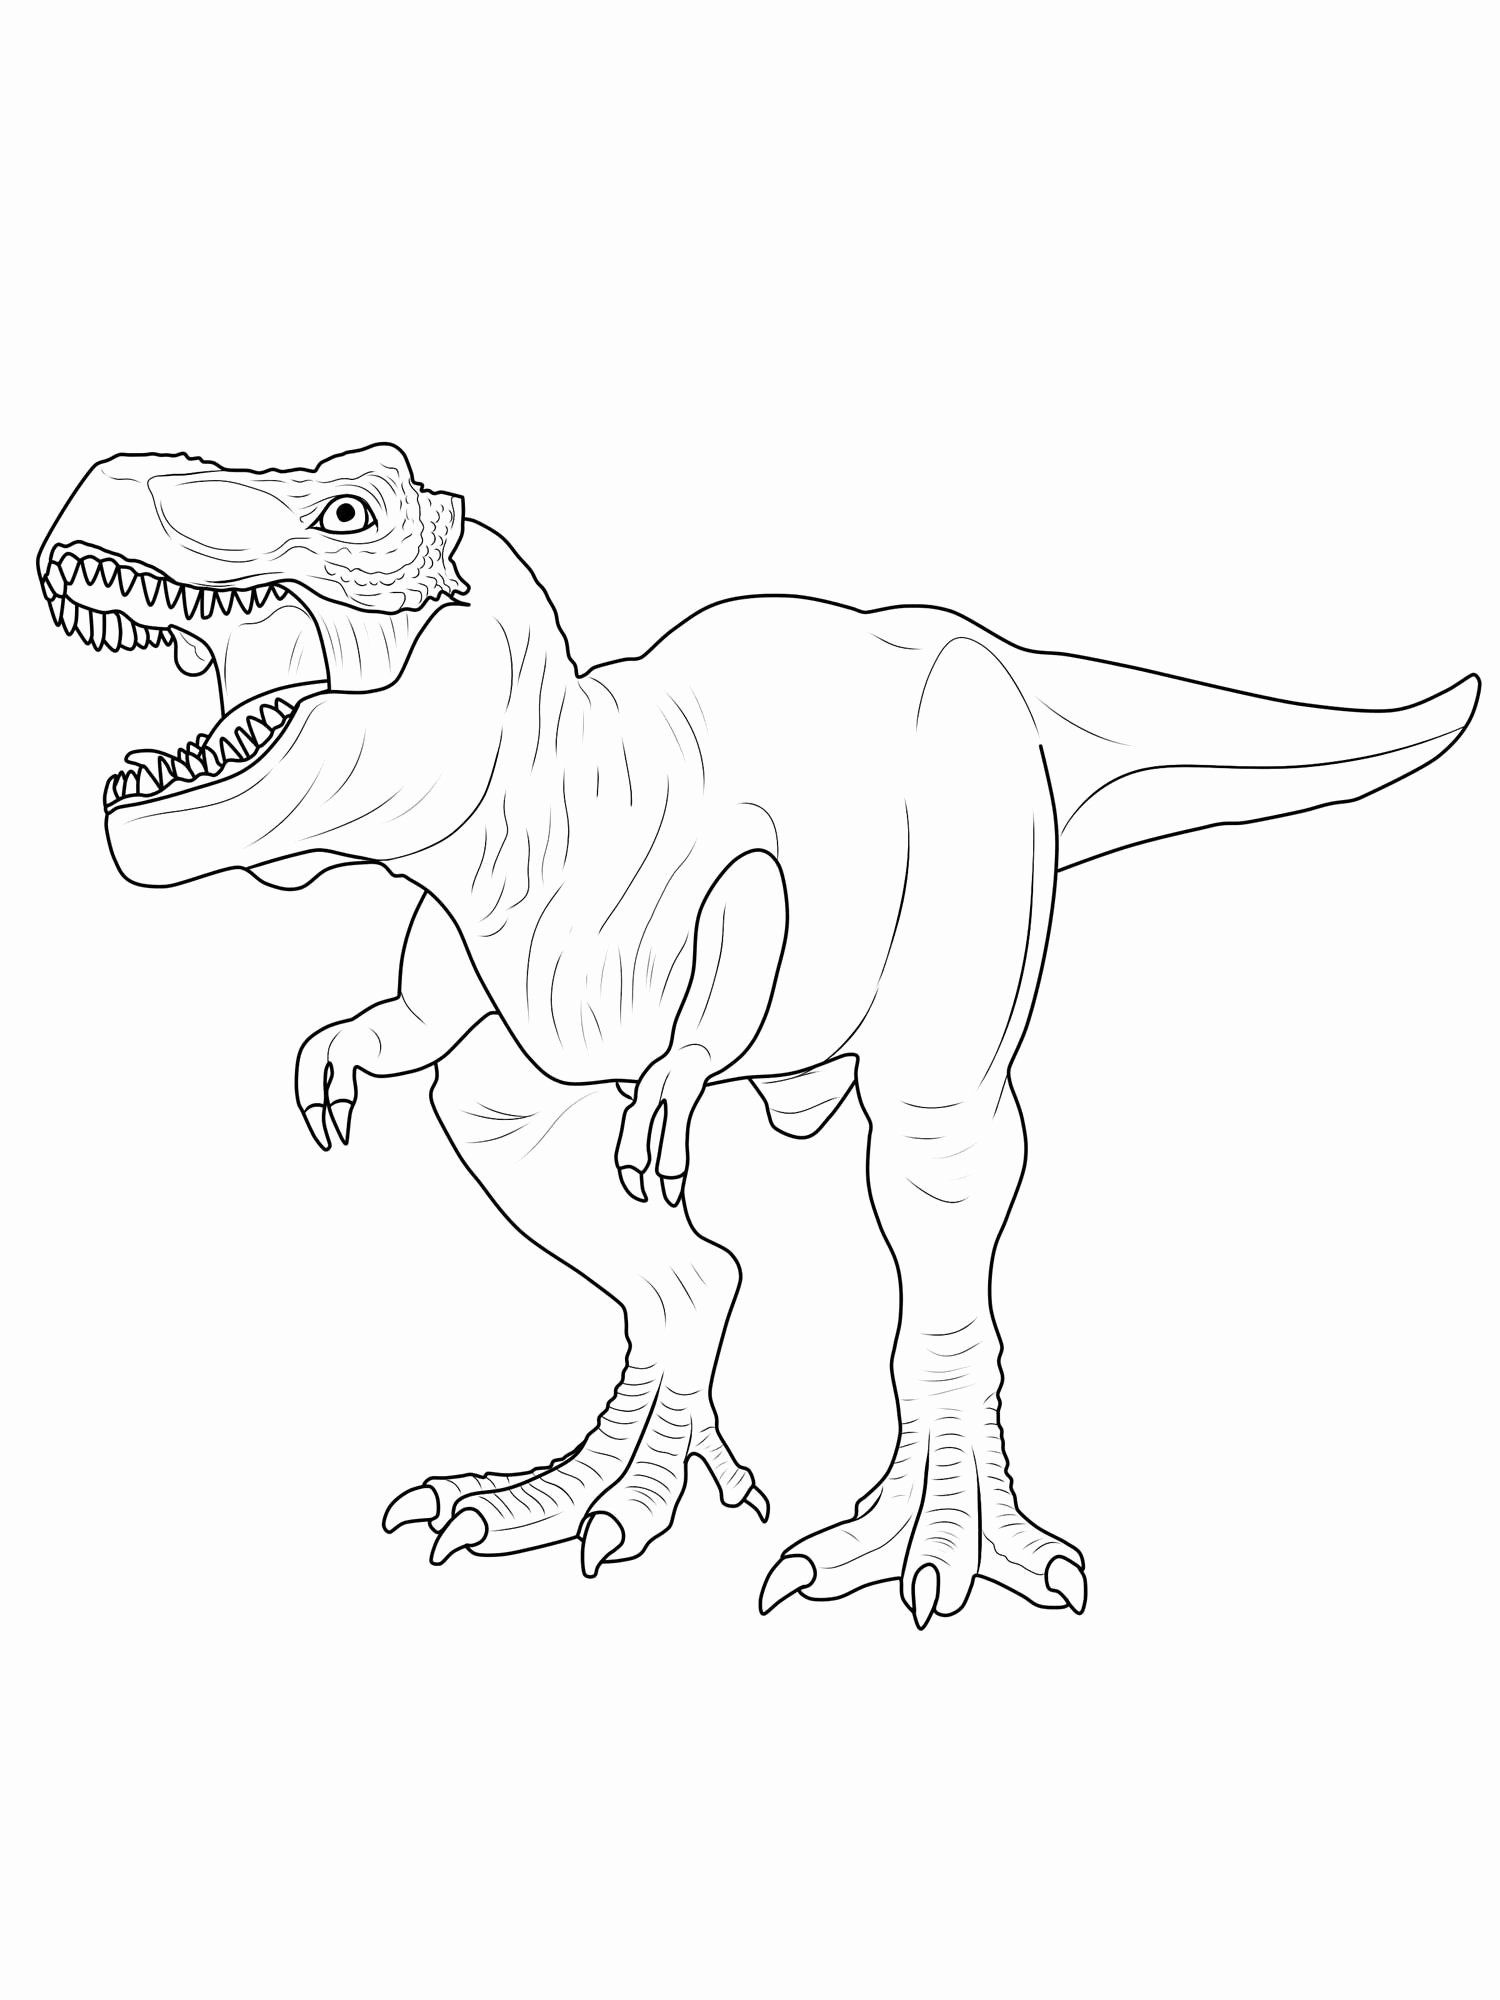 T Rex Coloring Sheets Inspirational Free T Rex Coloring Pages at